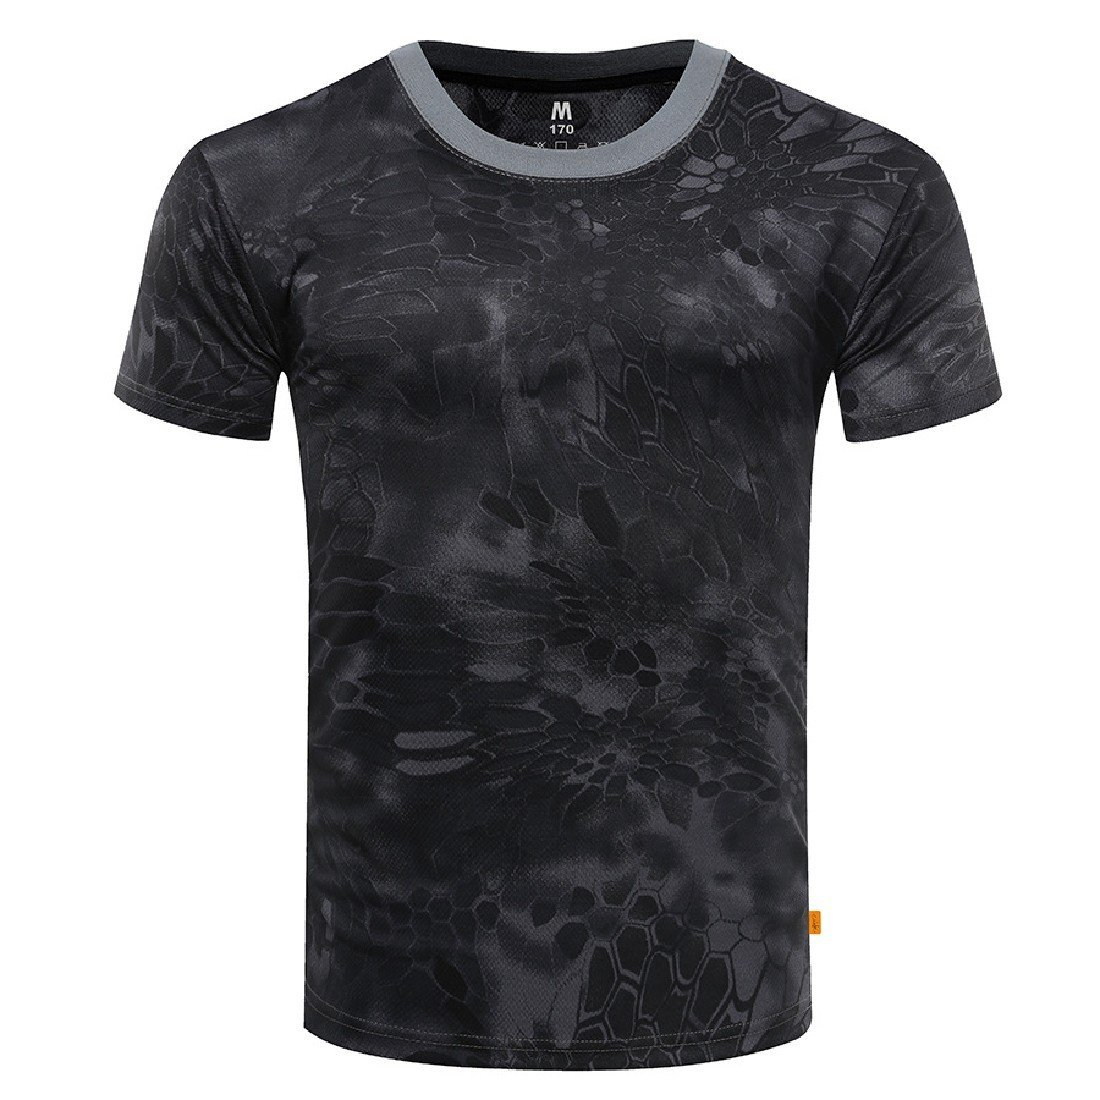 Comaba Men Cozy Breathable Camo Cool Dry Short Sleeve Tees Top Tshirts 1 XS by Comaba (Image #1)